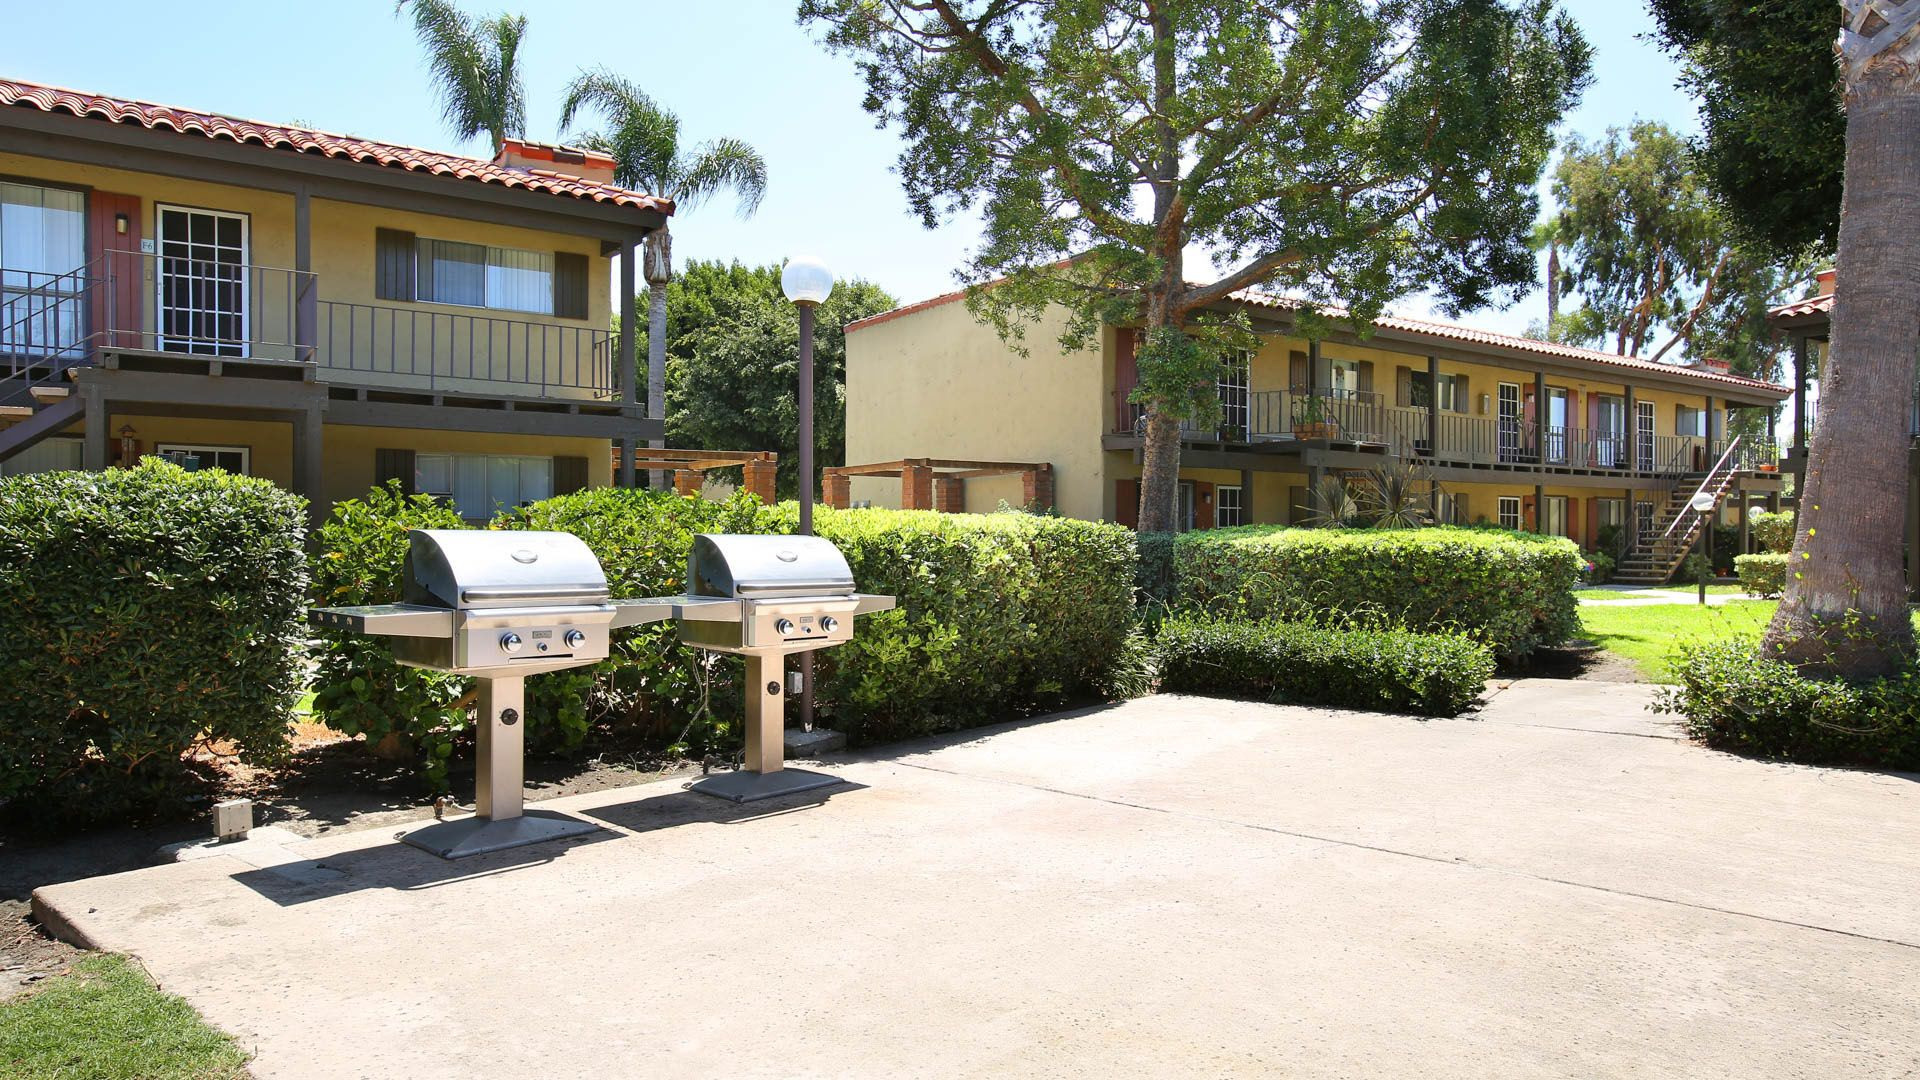 Regency Palms Apartments - Grilling